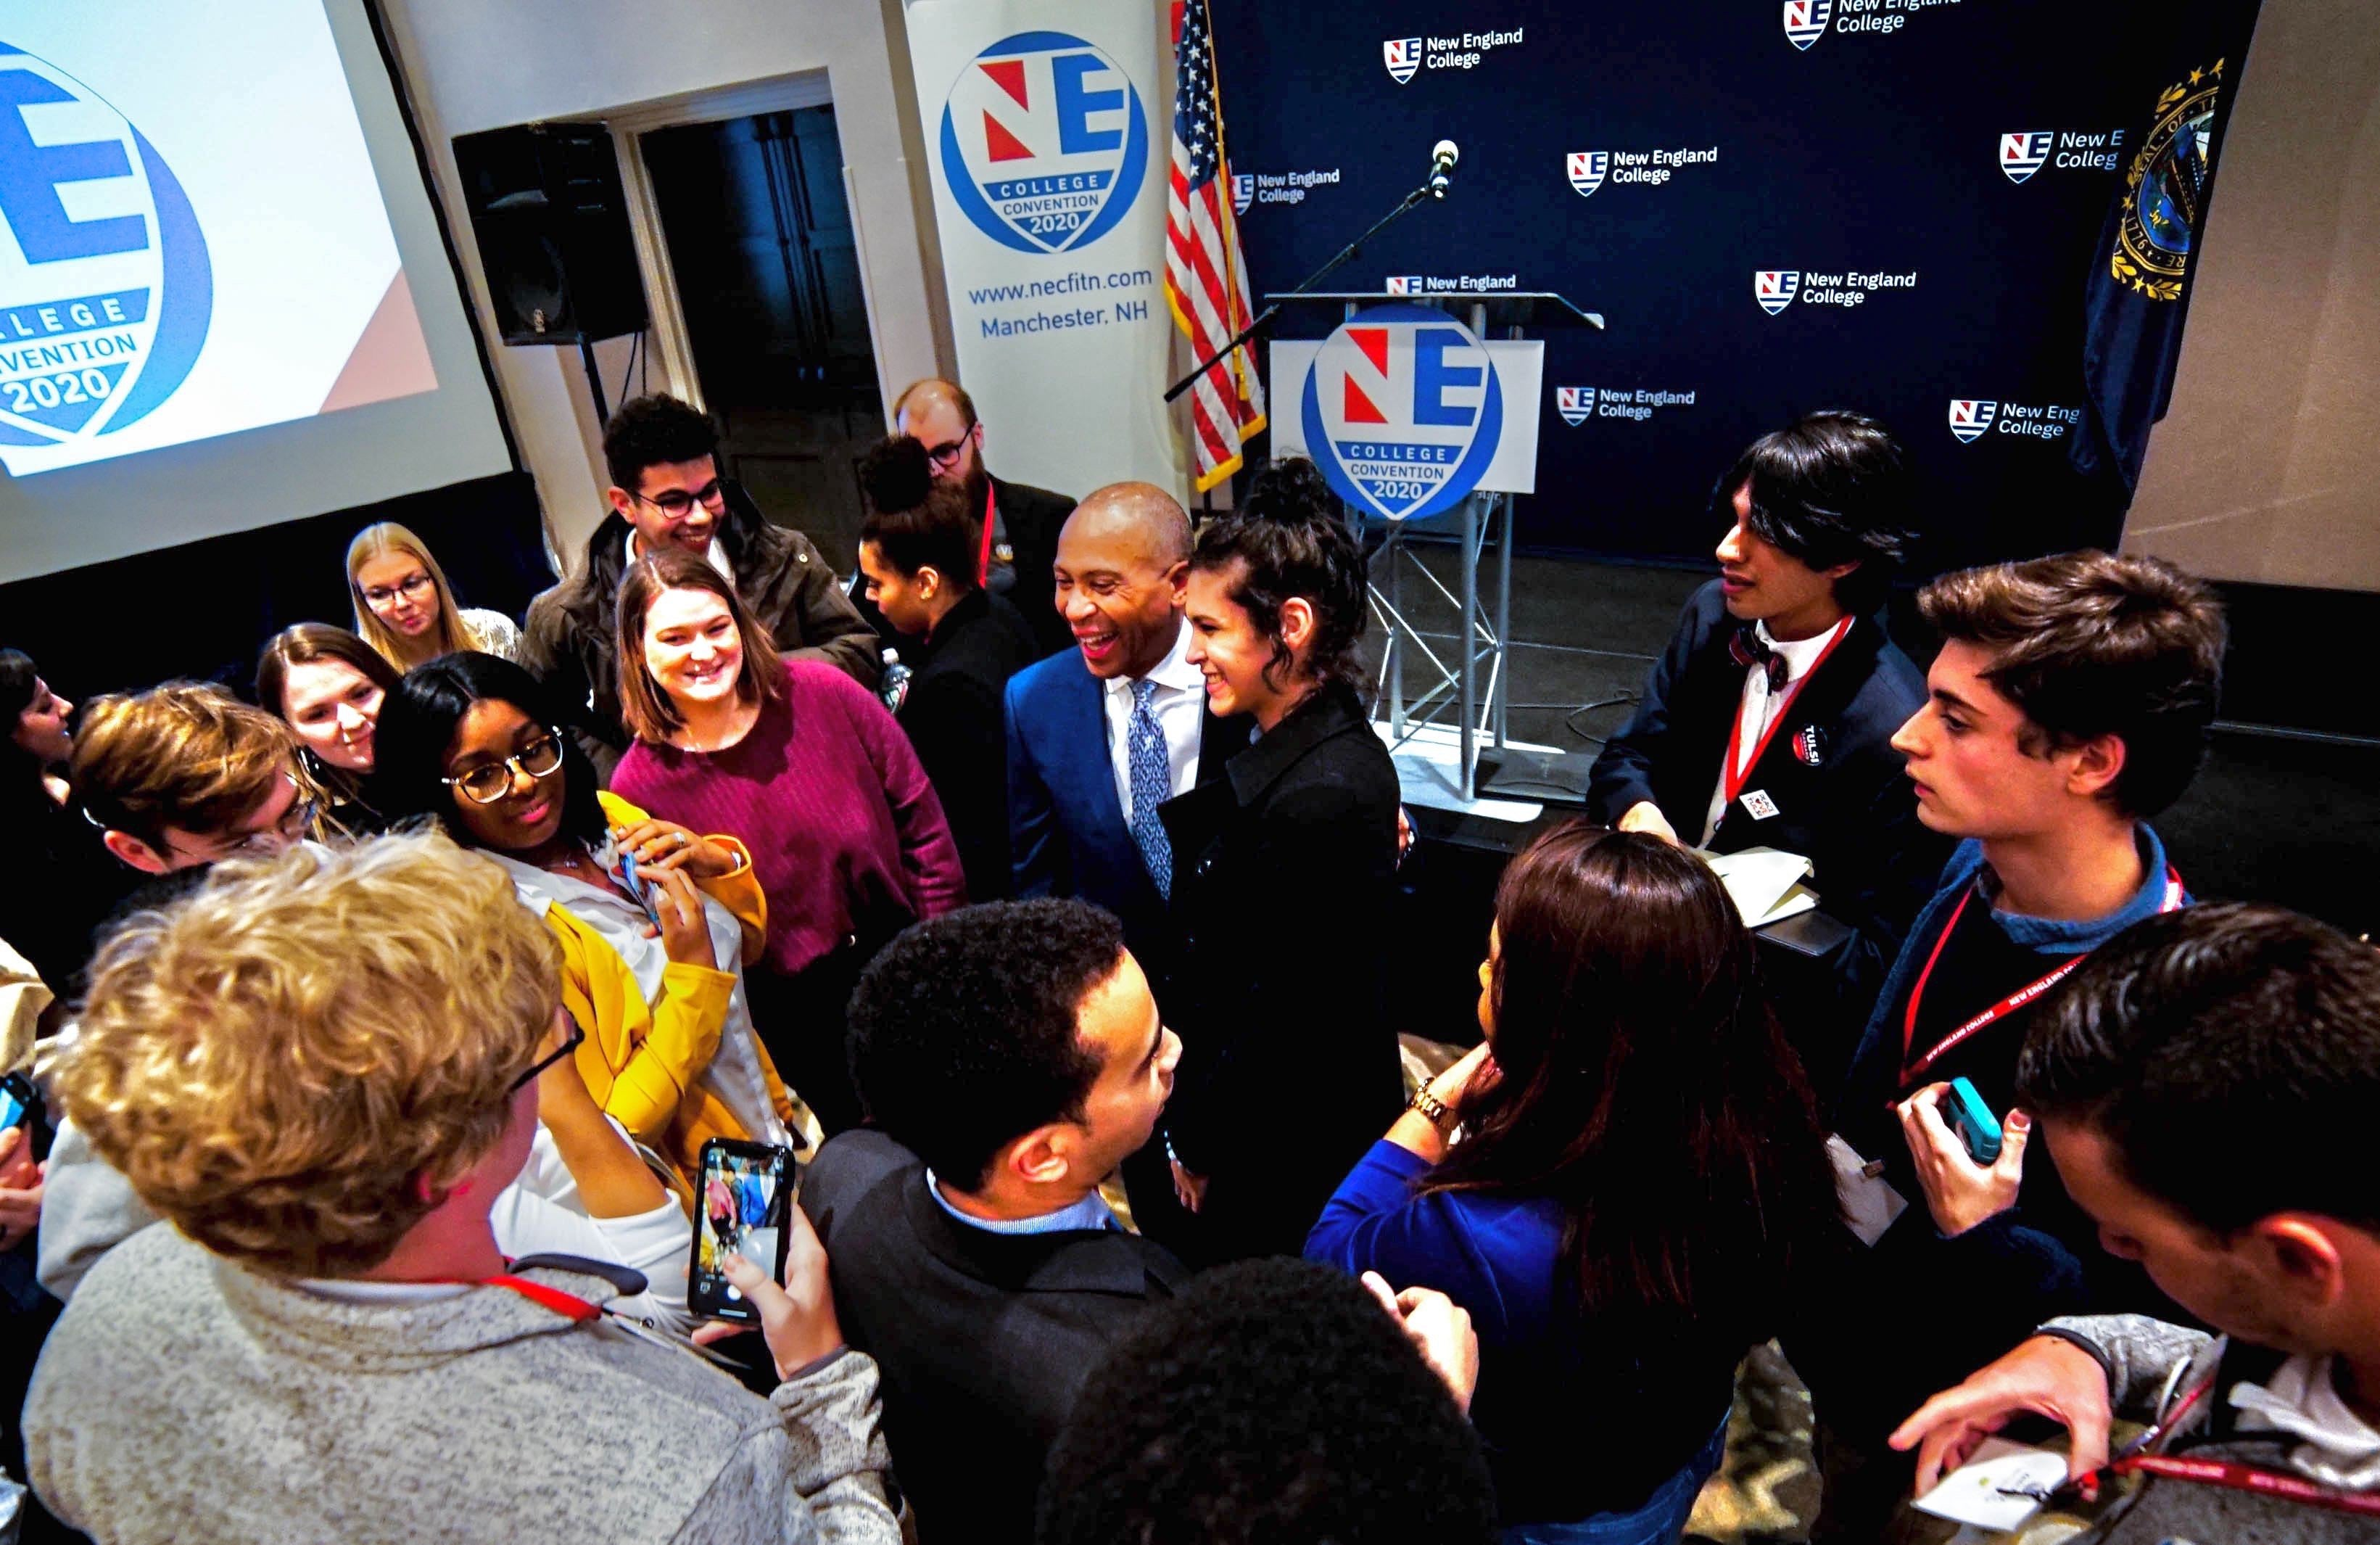 Deval Patrick greets attendees at the NE College Convention in Manchester, New Hampshire.